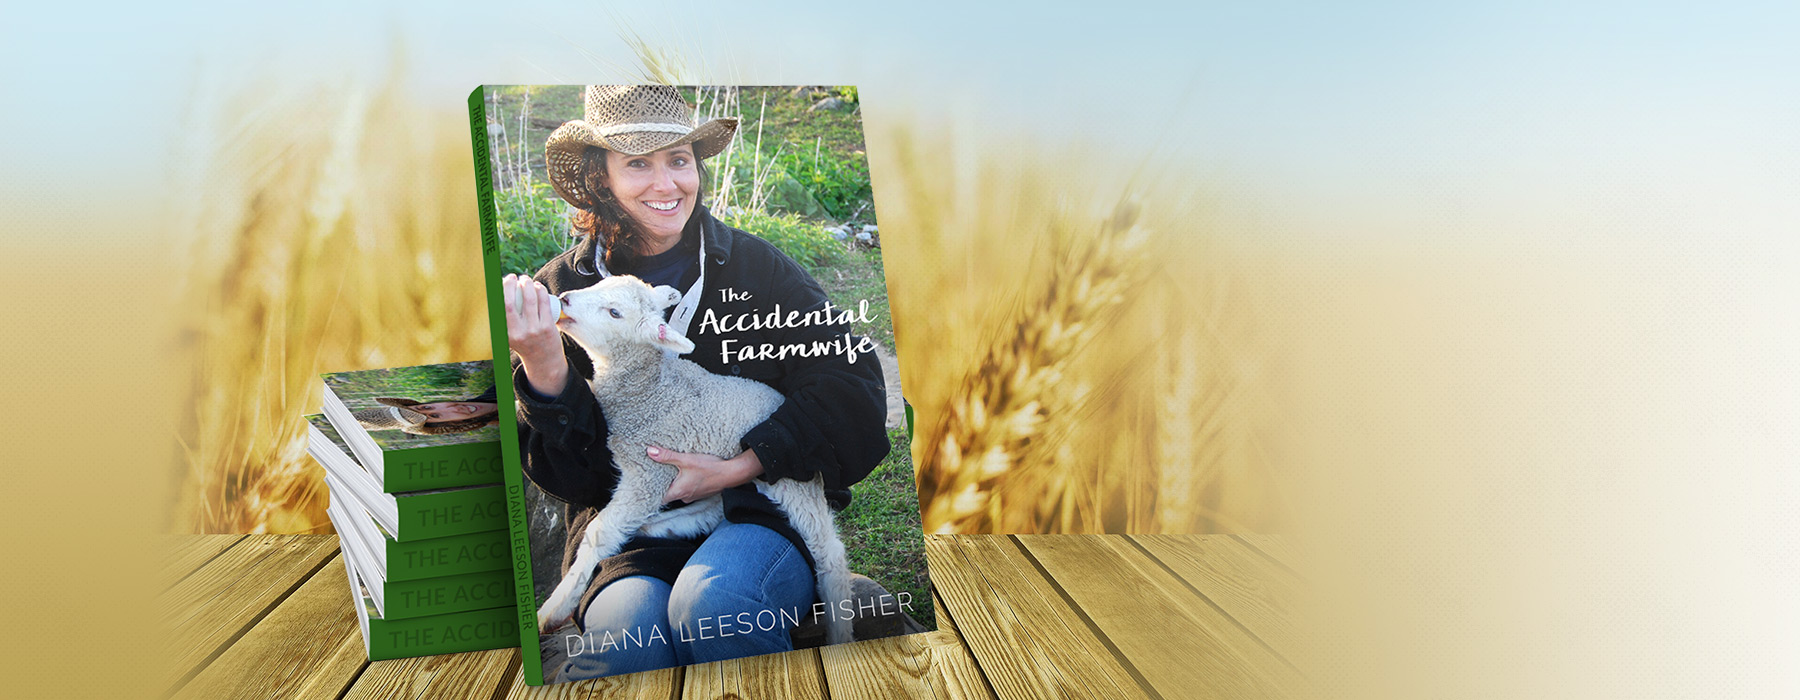 Diana Leeson Fisher author of The Accidental Farmwife